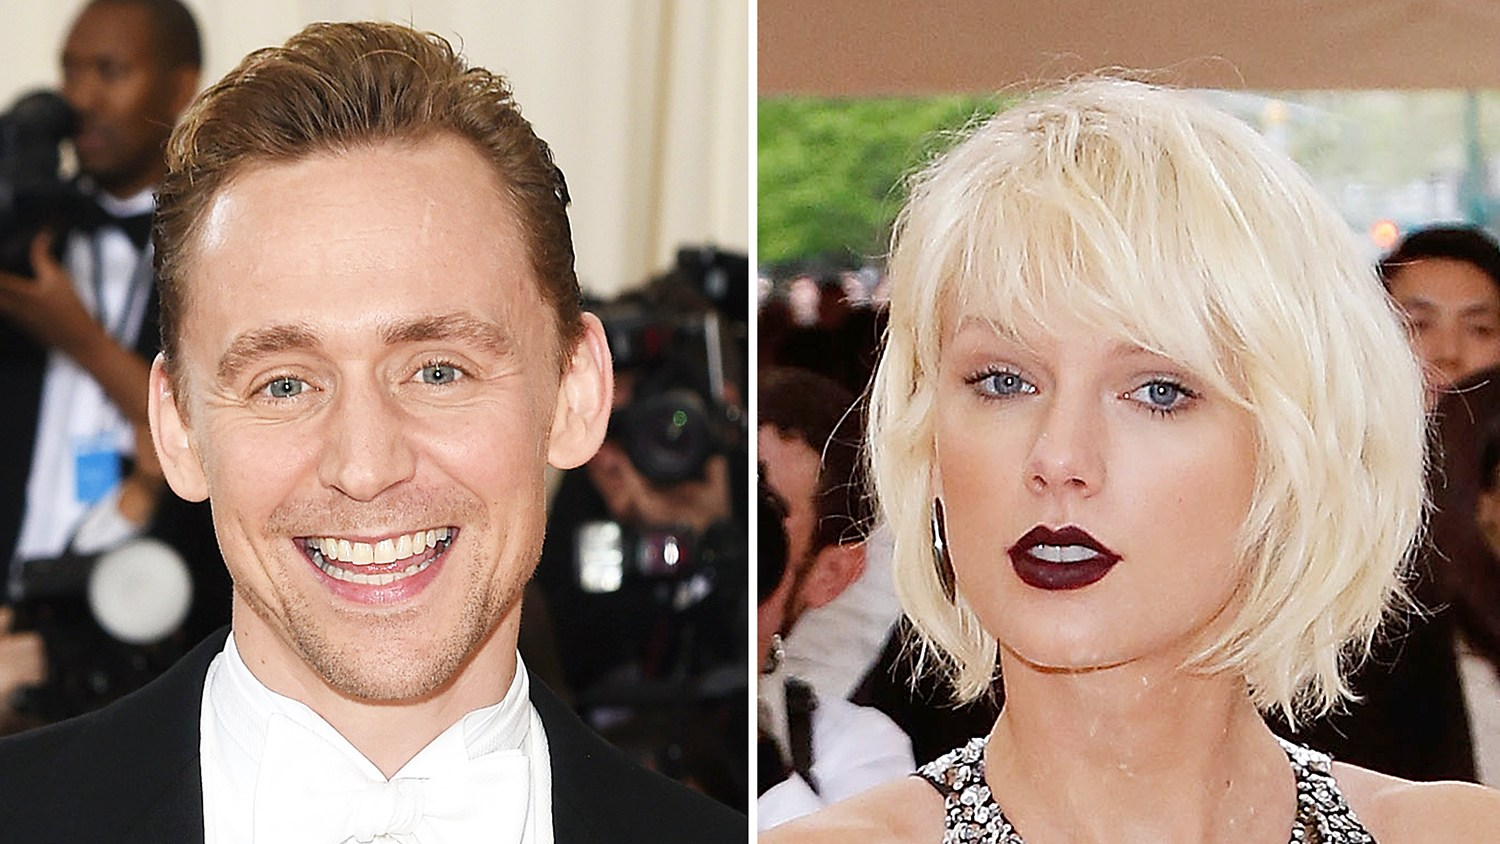 Tom Hiddleston and Taylor Swift